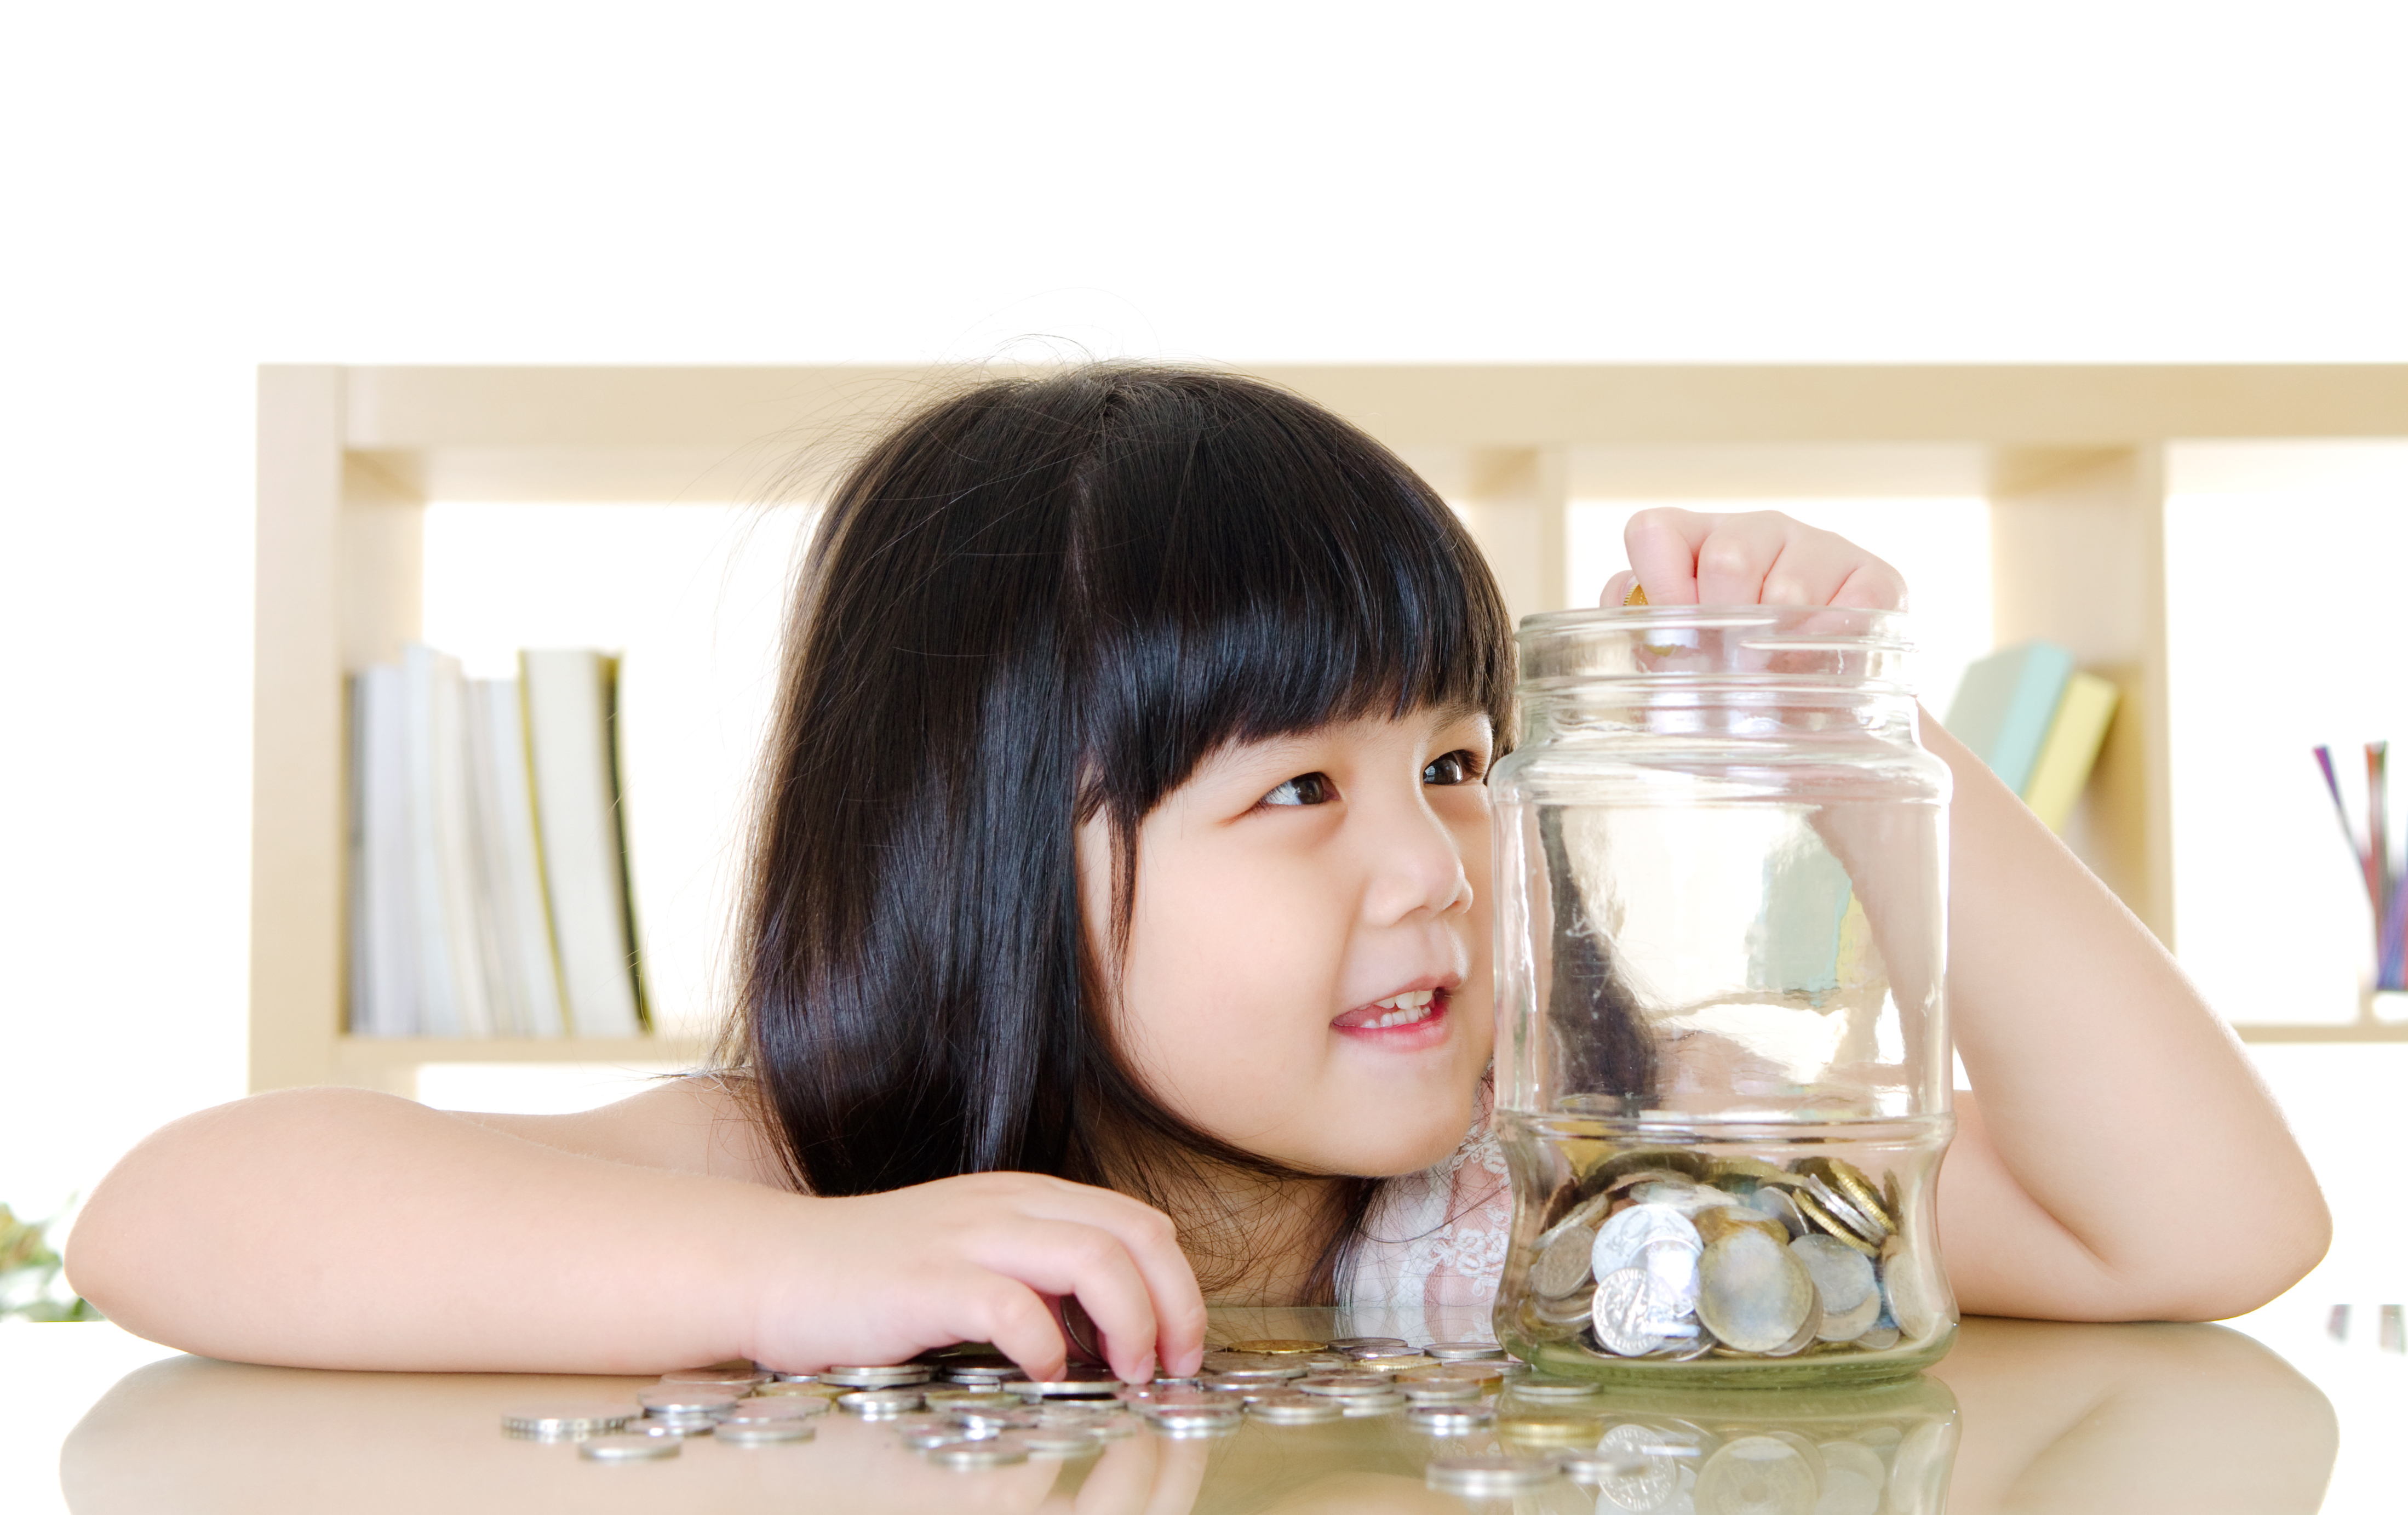 Young girl putting coins in a jar